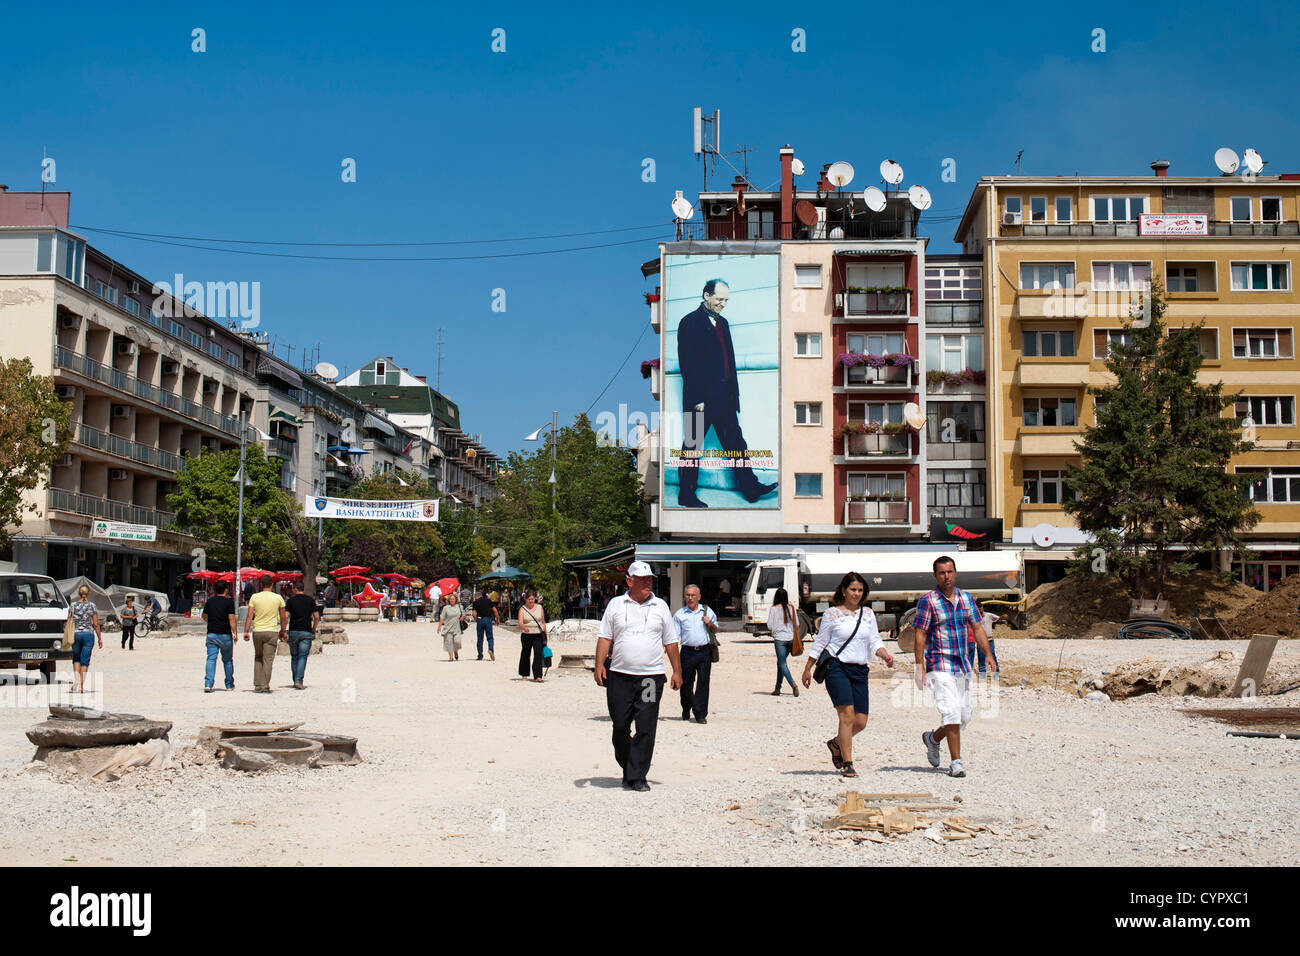 Reconstruction work in downtown Pristina, the capital of the Republic of Kosovo. - Stock Image